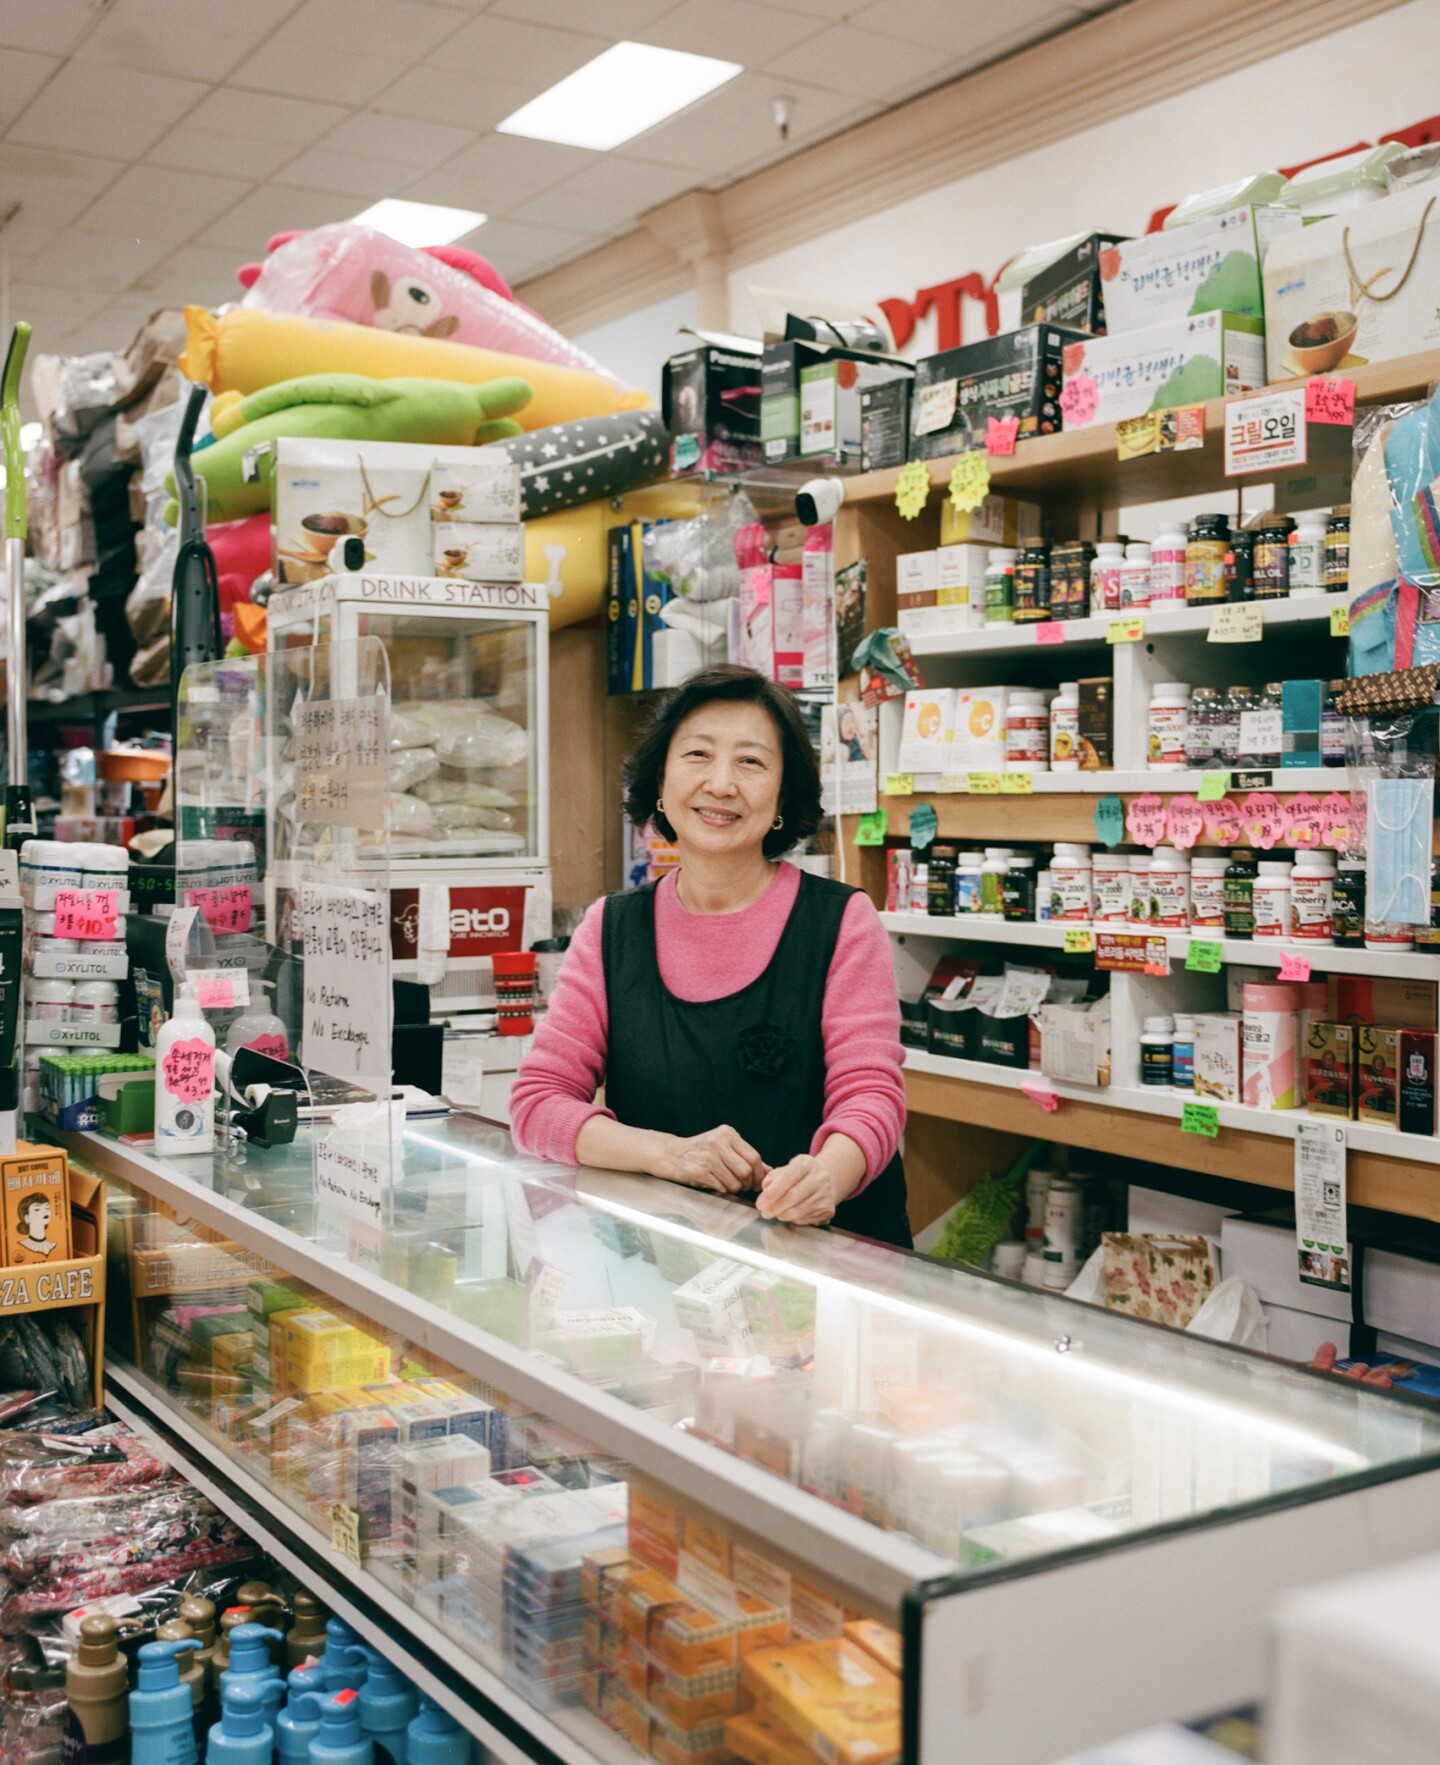 A shopkeeper in Koreatown stands by the checkout counter smiling with rows of goods behind her.